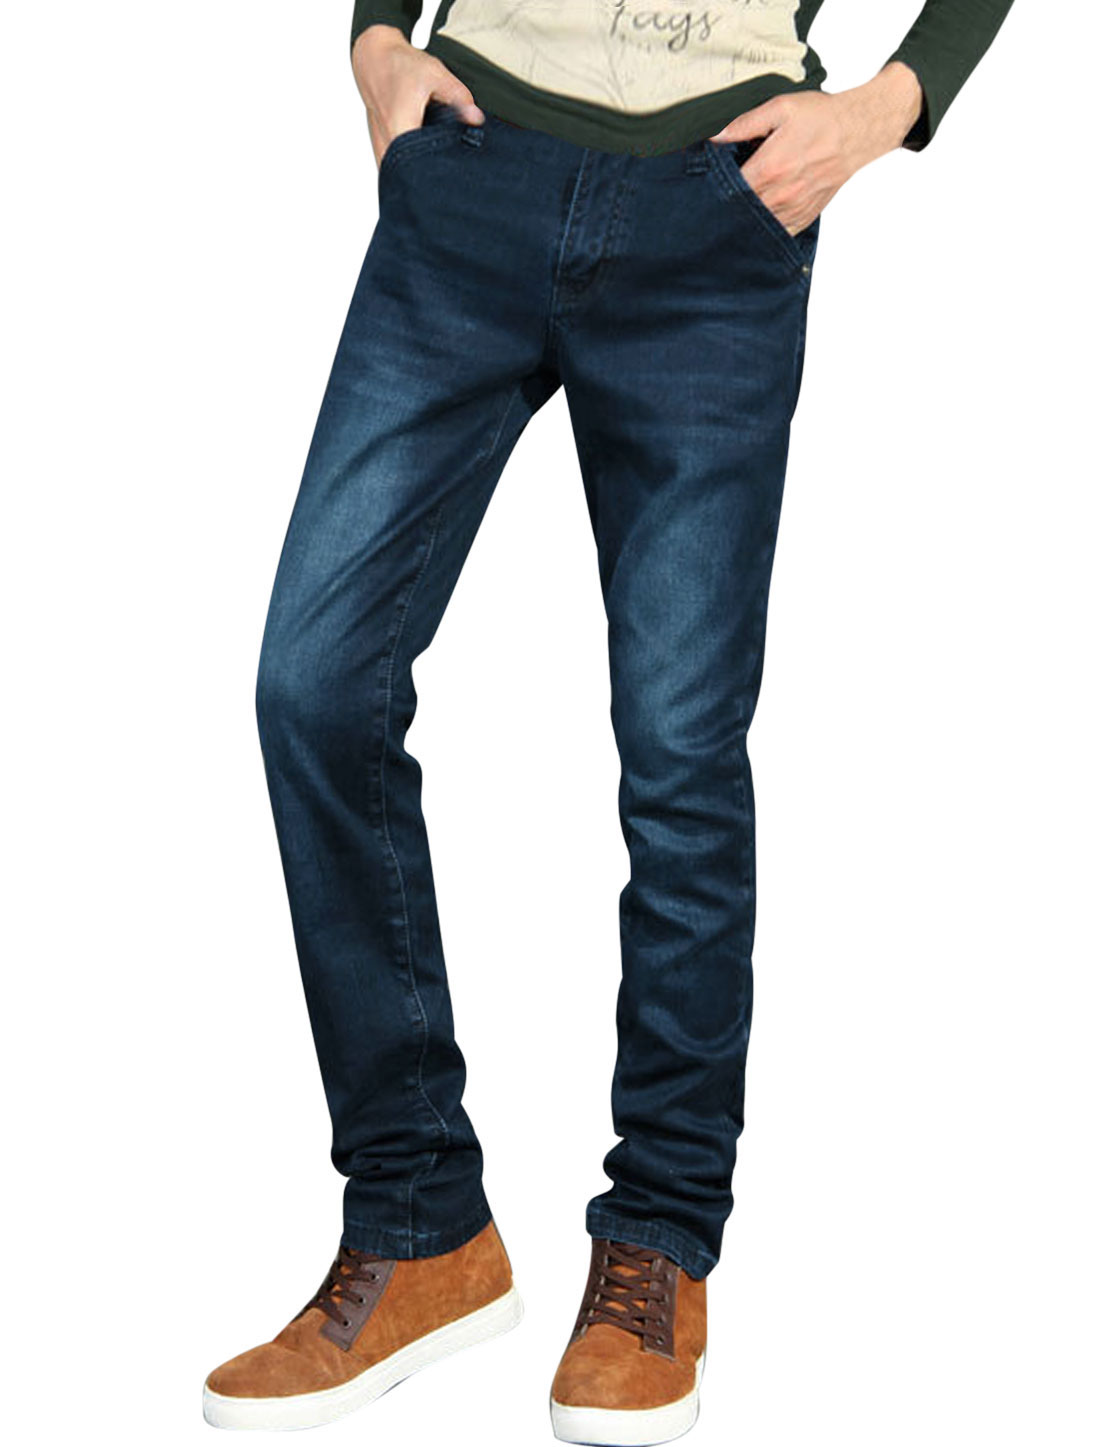 Men Natural Waist One Button Zip Fly Leisure Jeans Navy Blue W30